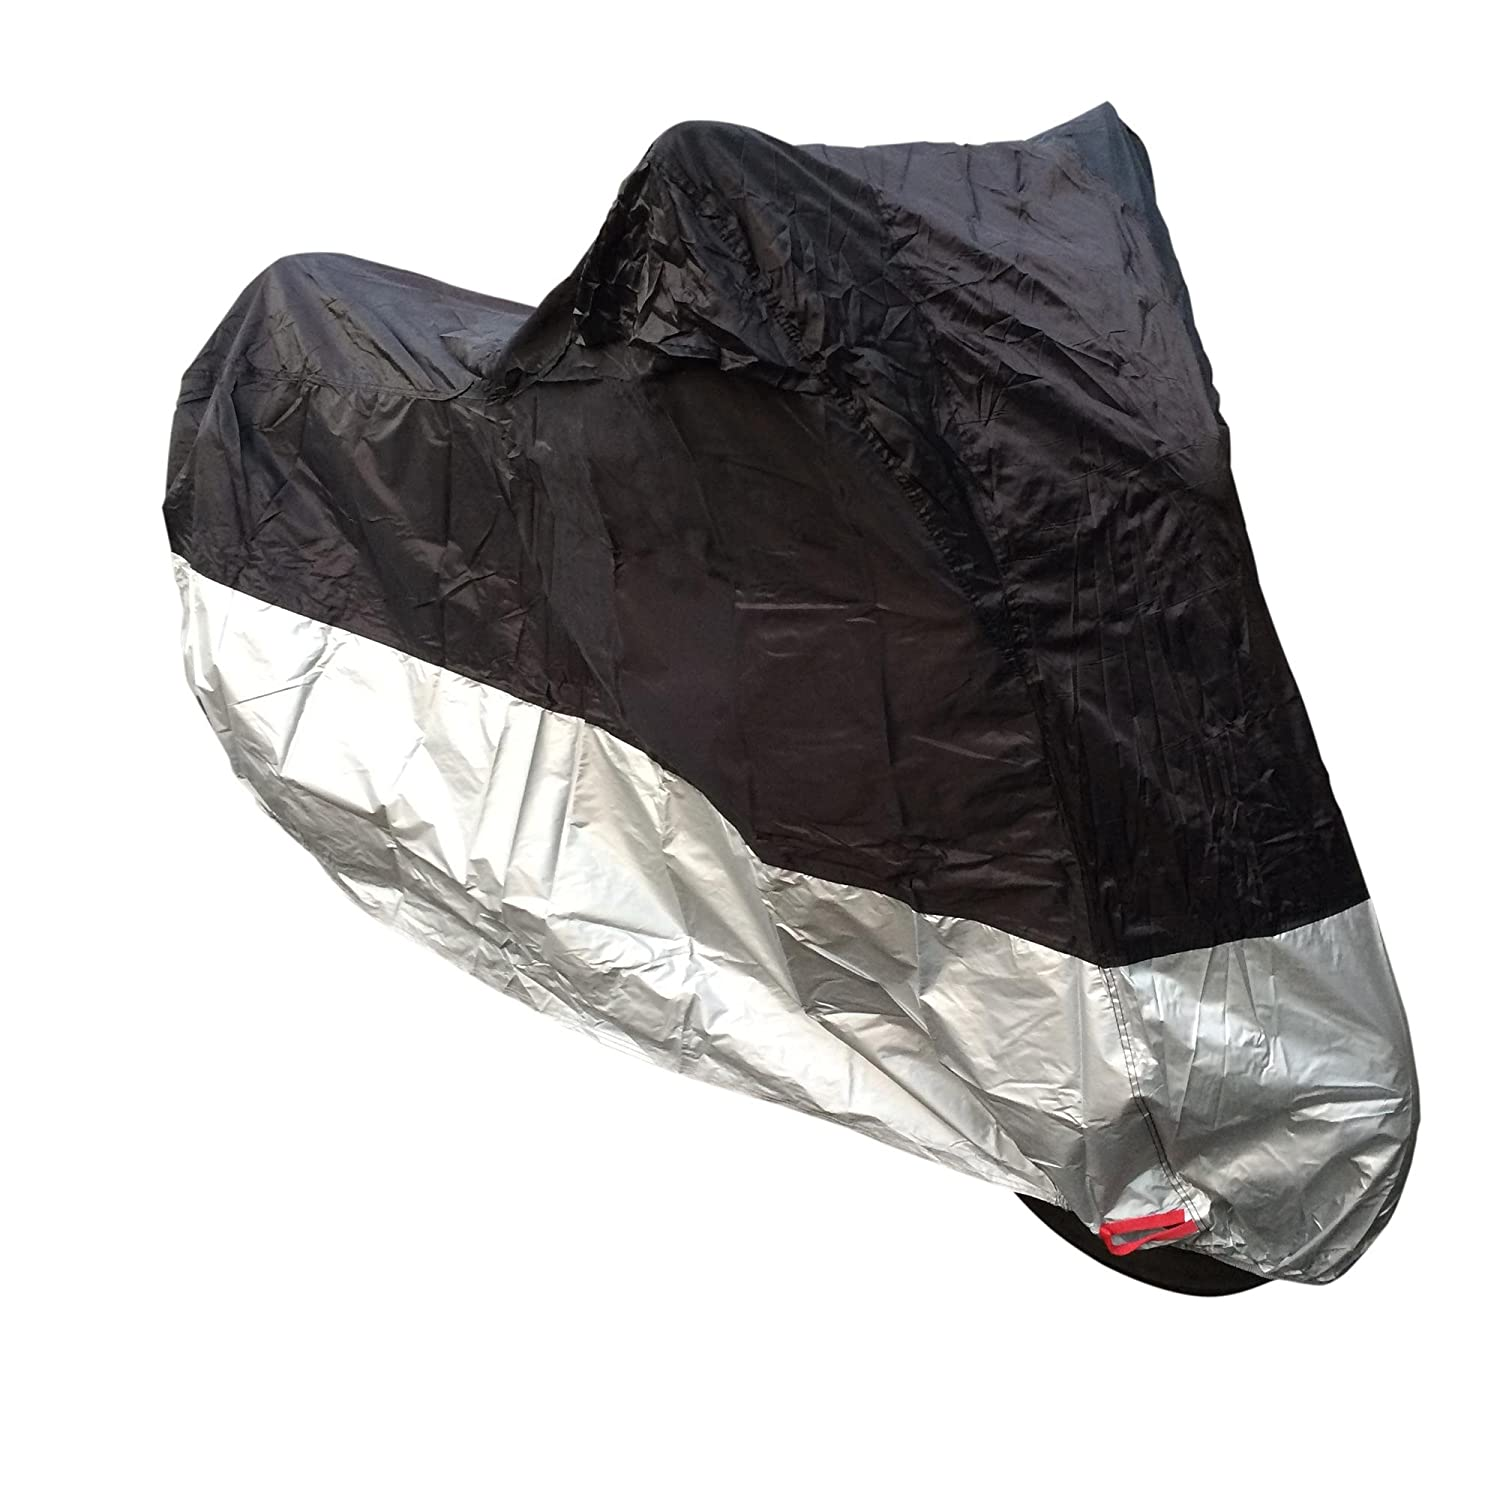 VIPER MOTO Accessories A104 H2 Out Bike Cover, Silver, Large Motohart